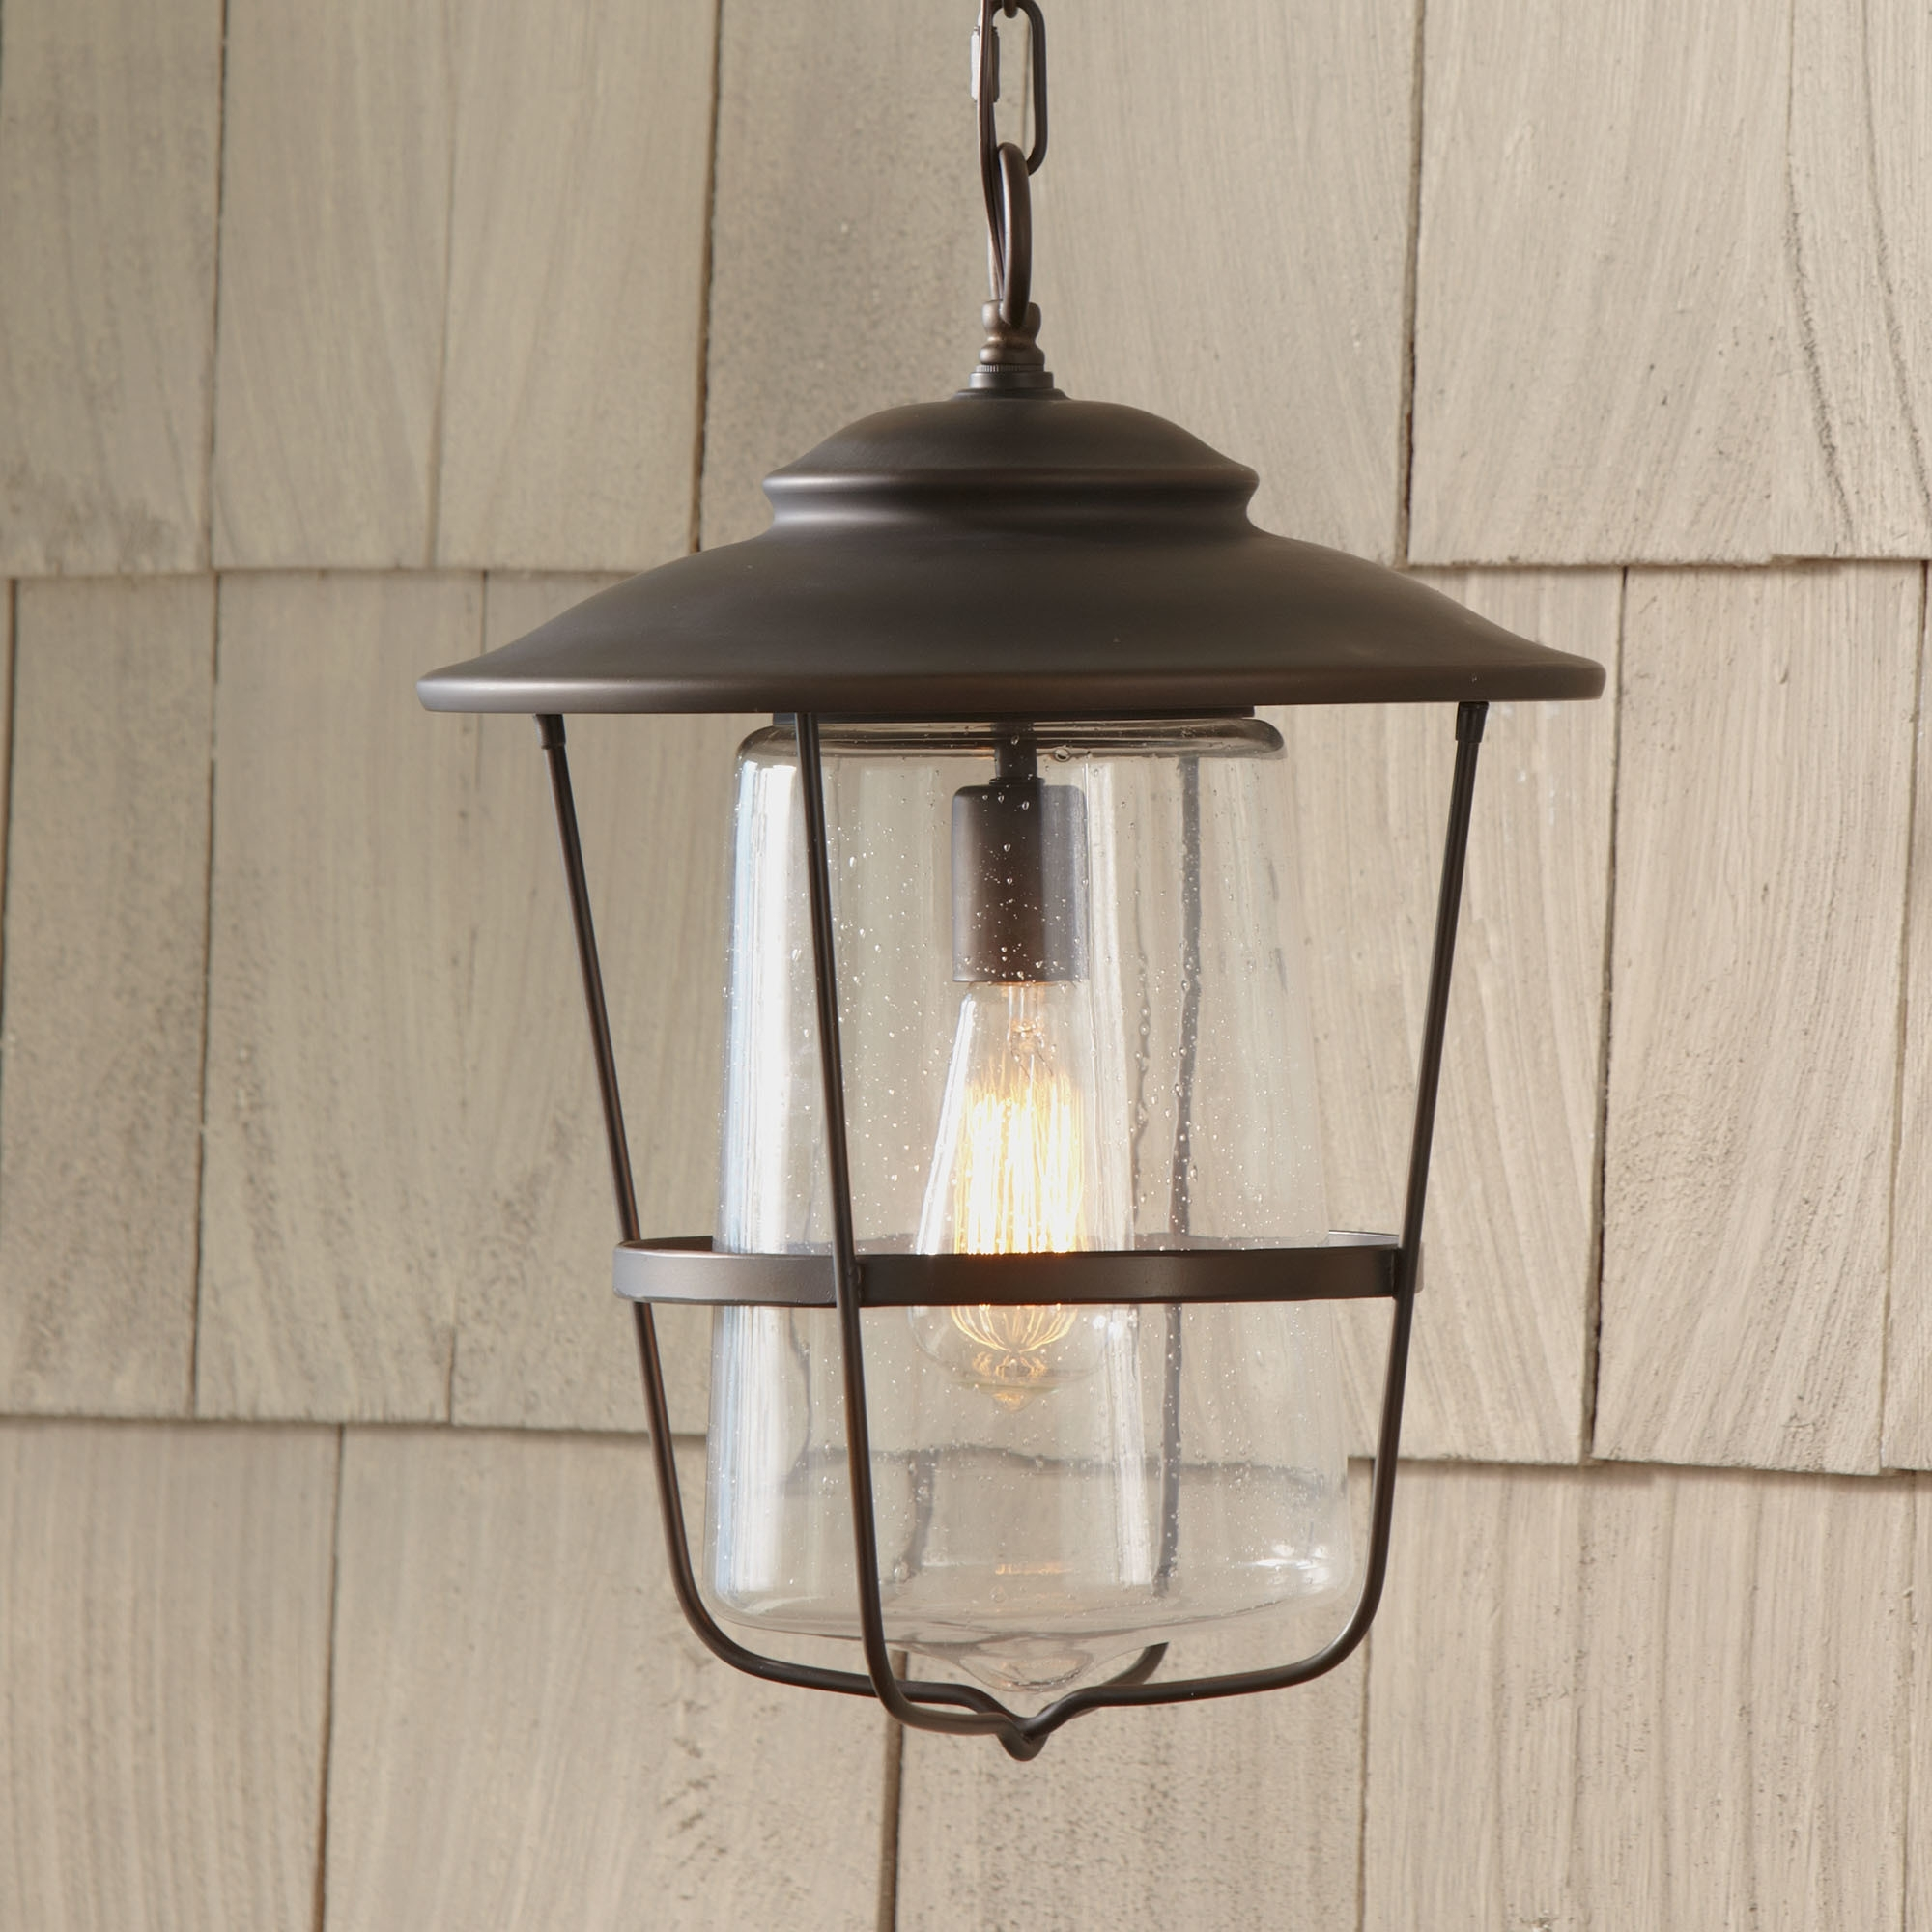 Best And Newest Outdoor Hanging Lights Wayfair Remington Lantern ~ Loversiq Inside Battery Operated Outdoor Lights At Wayfair (View 8 of 20)